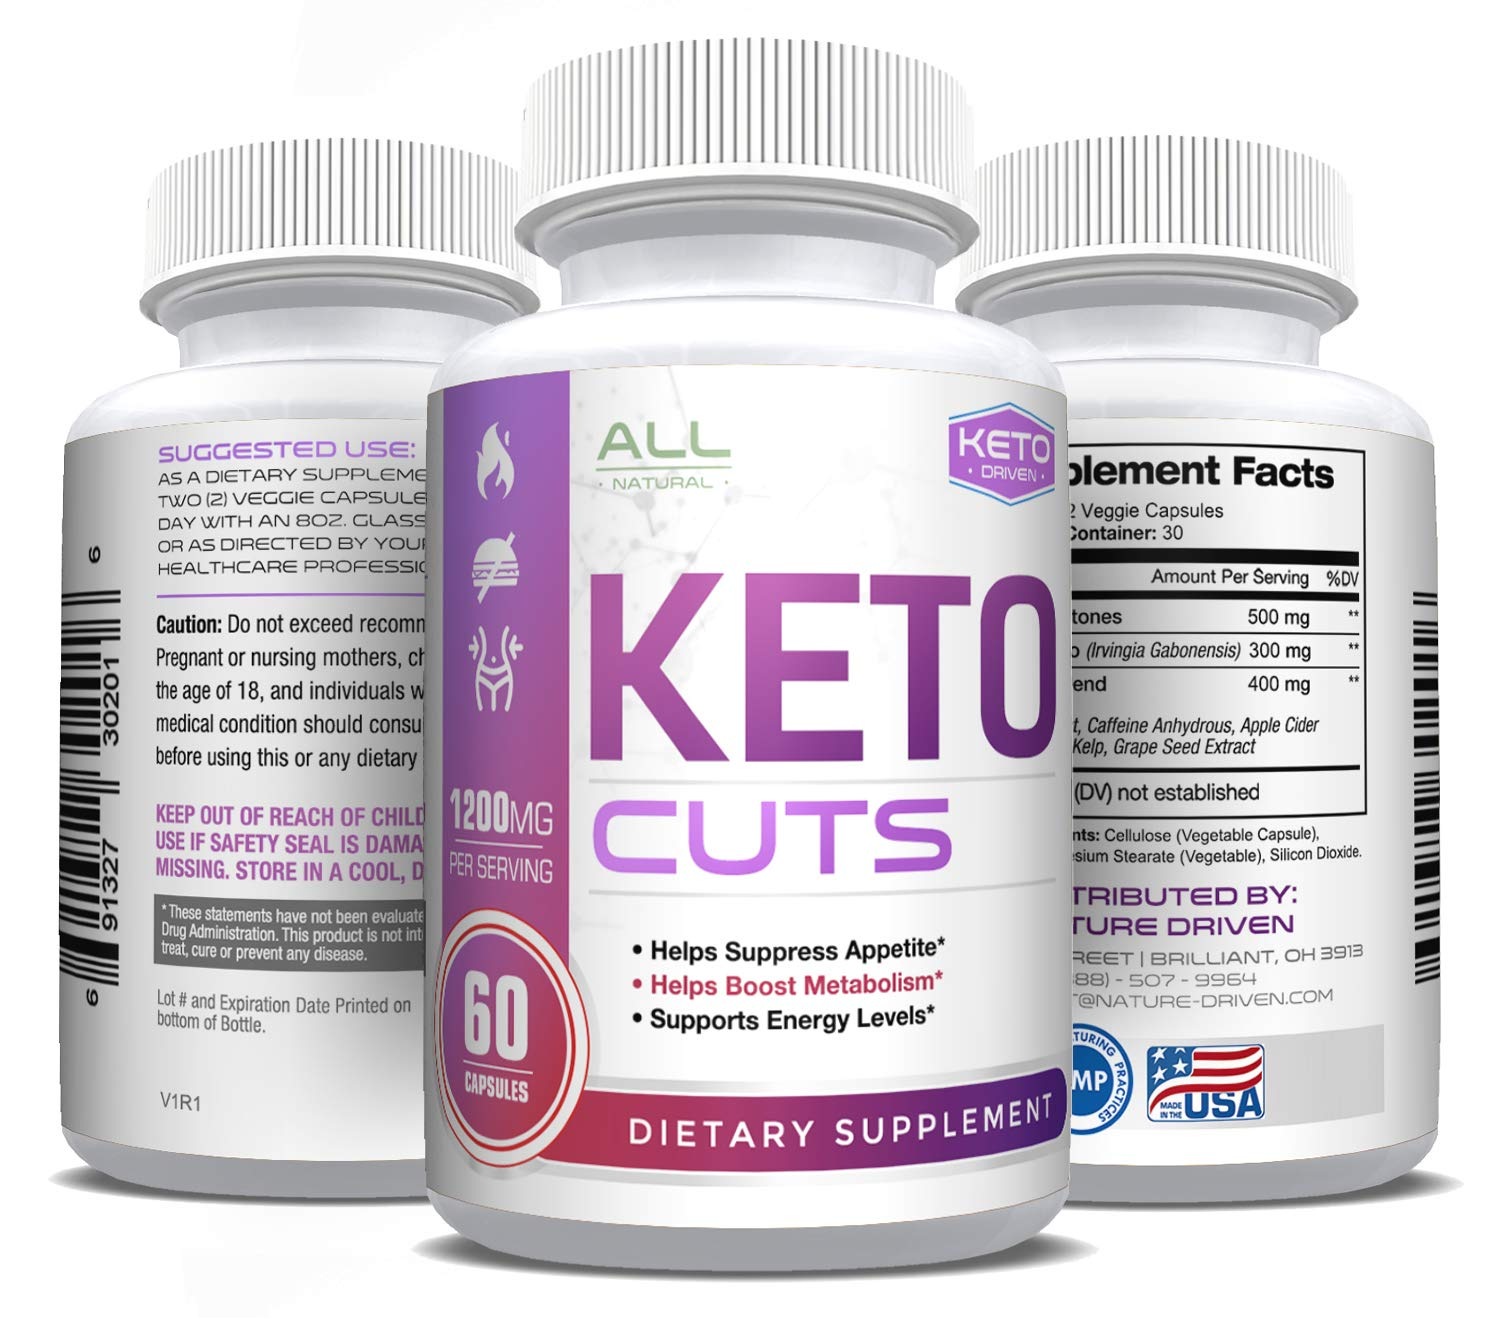 Weight Loss Pills for Women and Men - Best Keto Pills - Boosts Metabolism & Energy - Burn Fat Not Carbs - All-Natural Weight Loss - Electrolytes - 60 Capsules by Nature Driven by Nature Driven